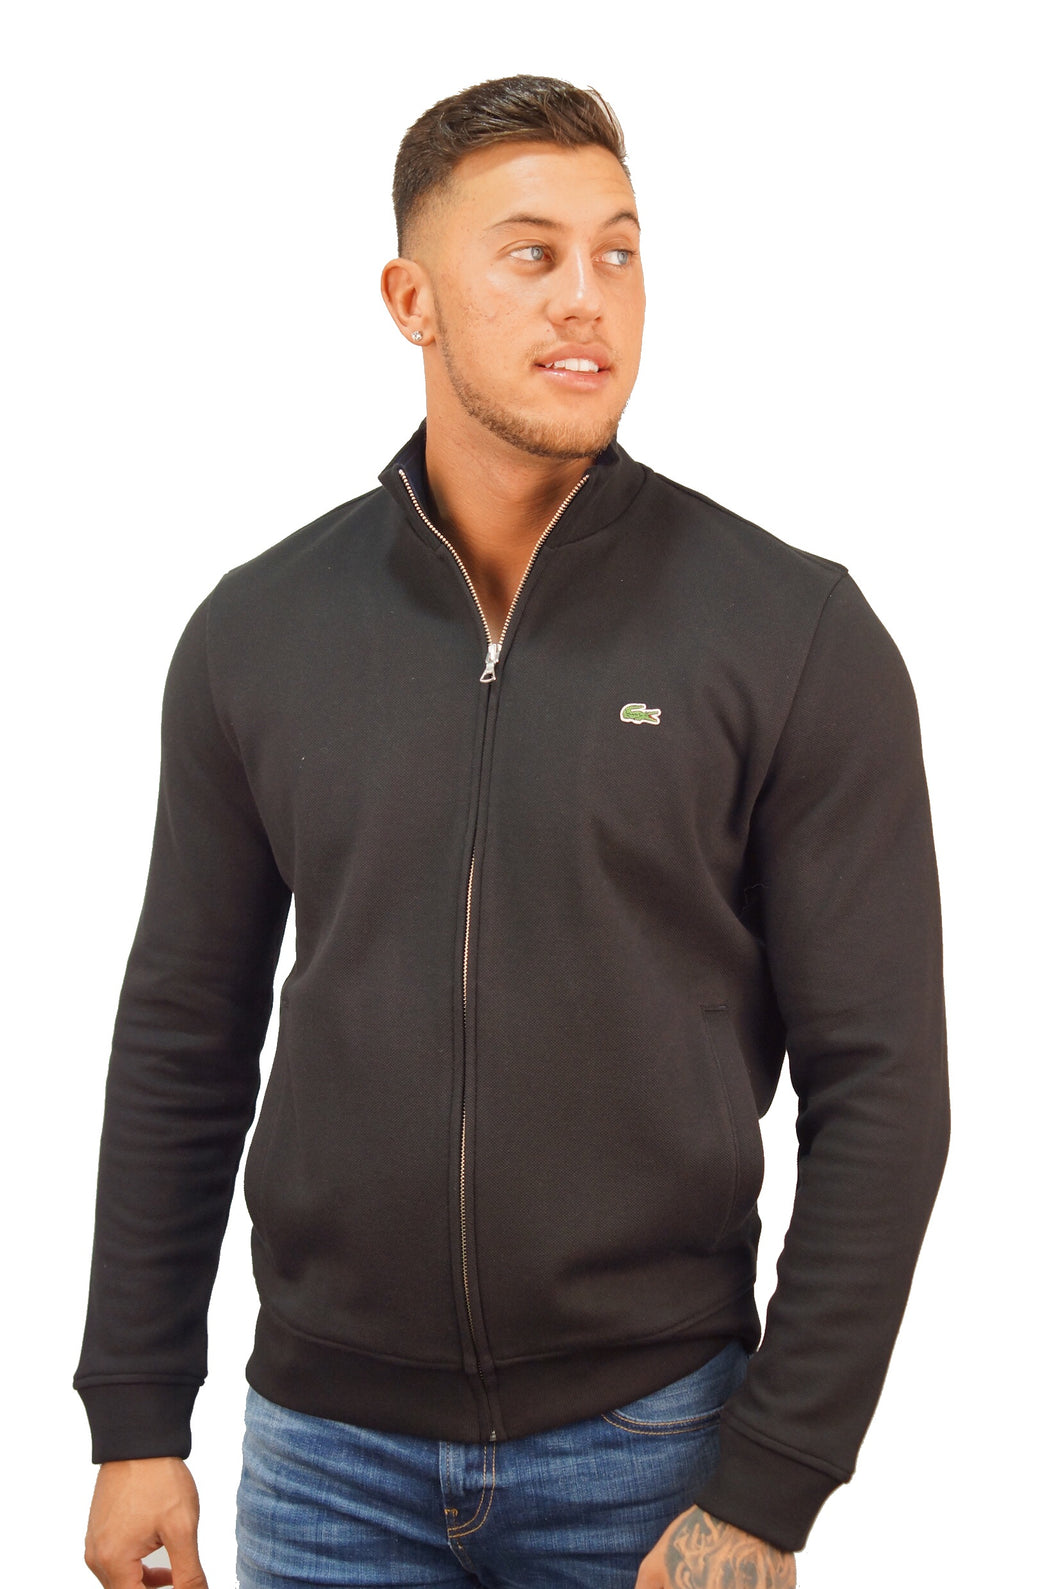 Lacoste PIQUE CLASSIC CROC ZIP UP Black